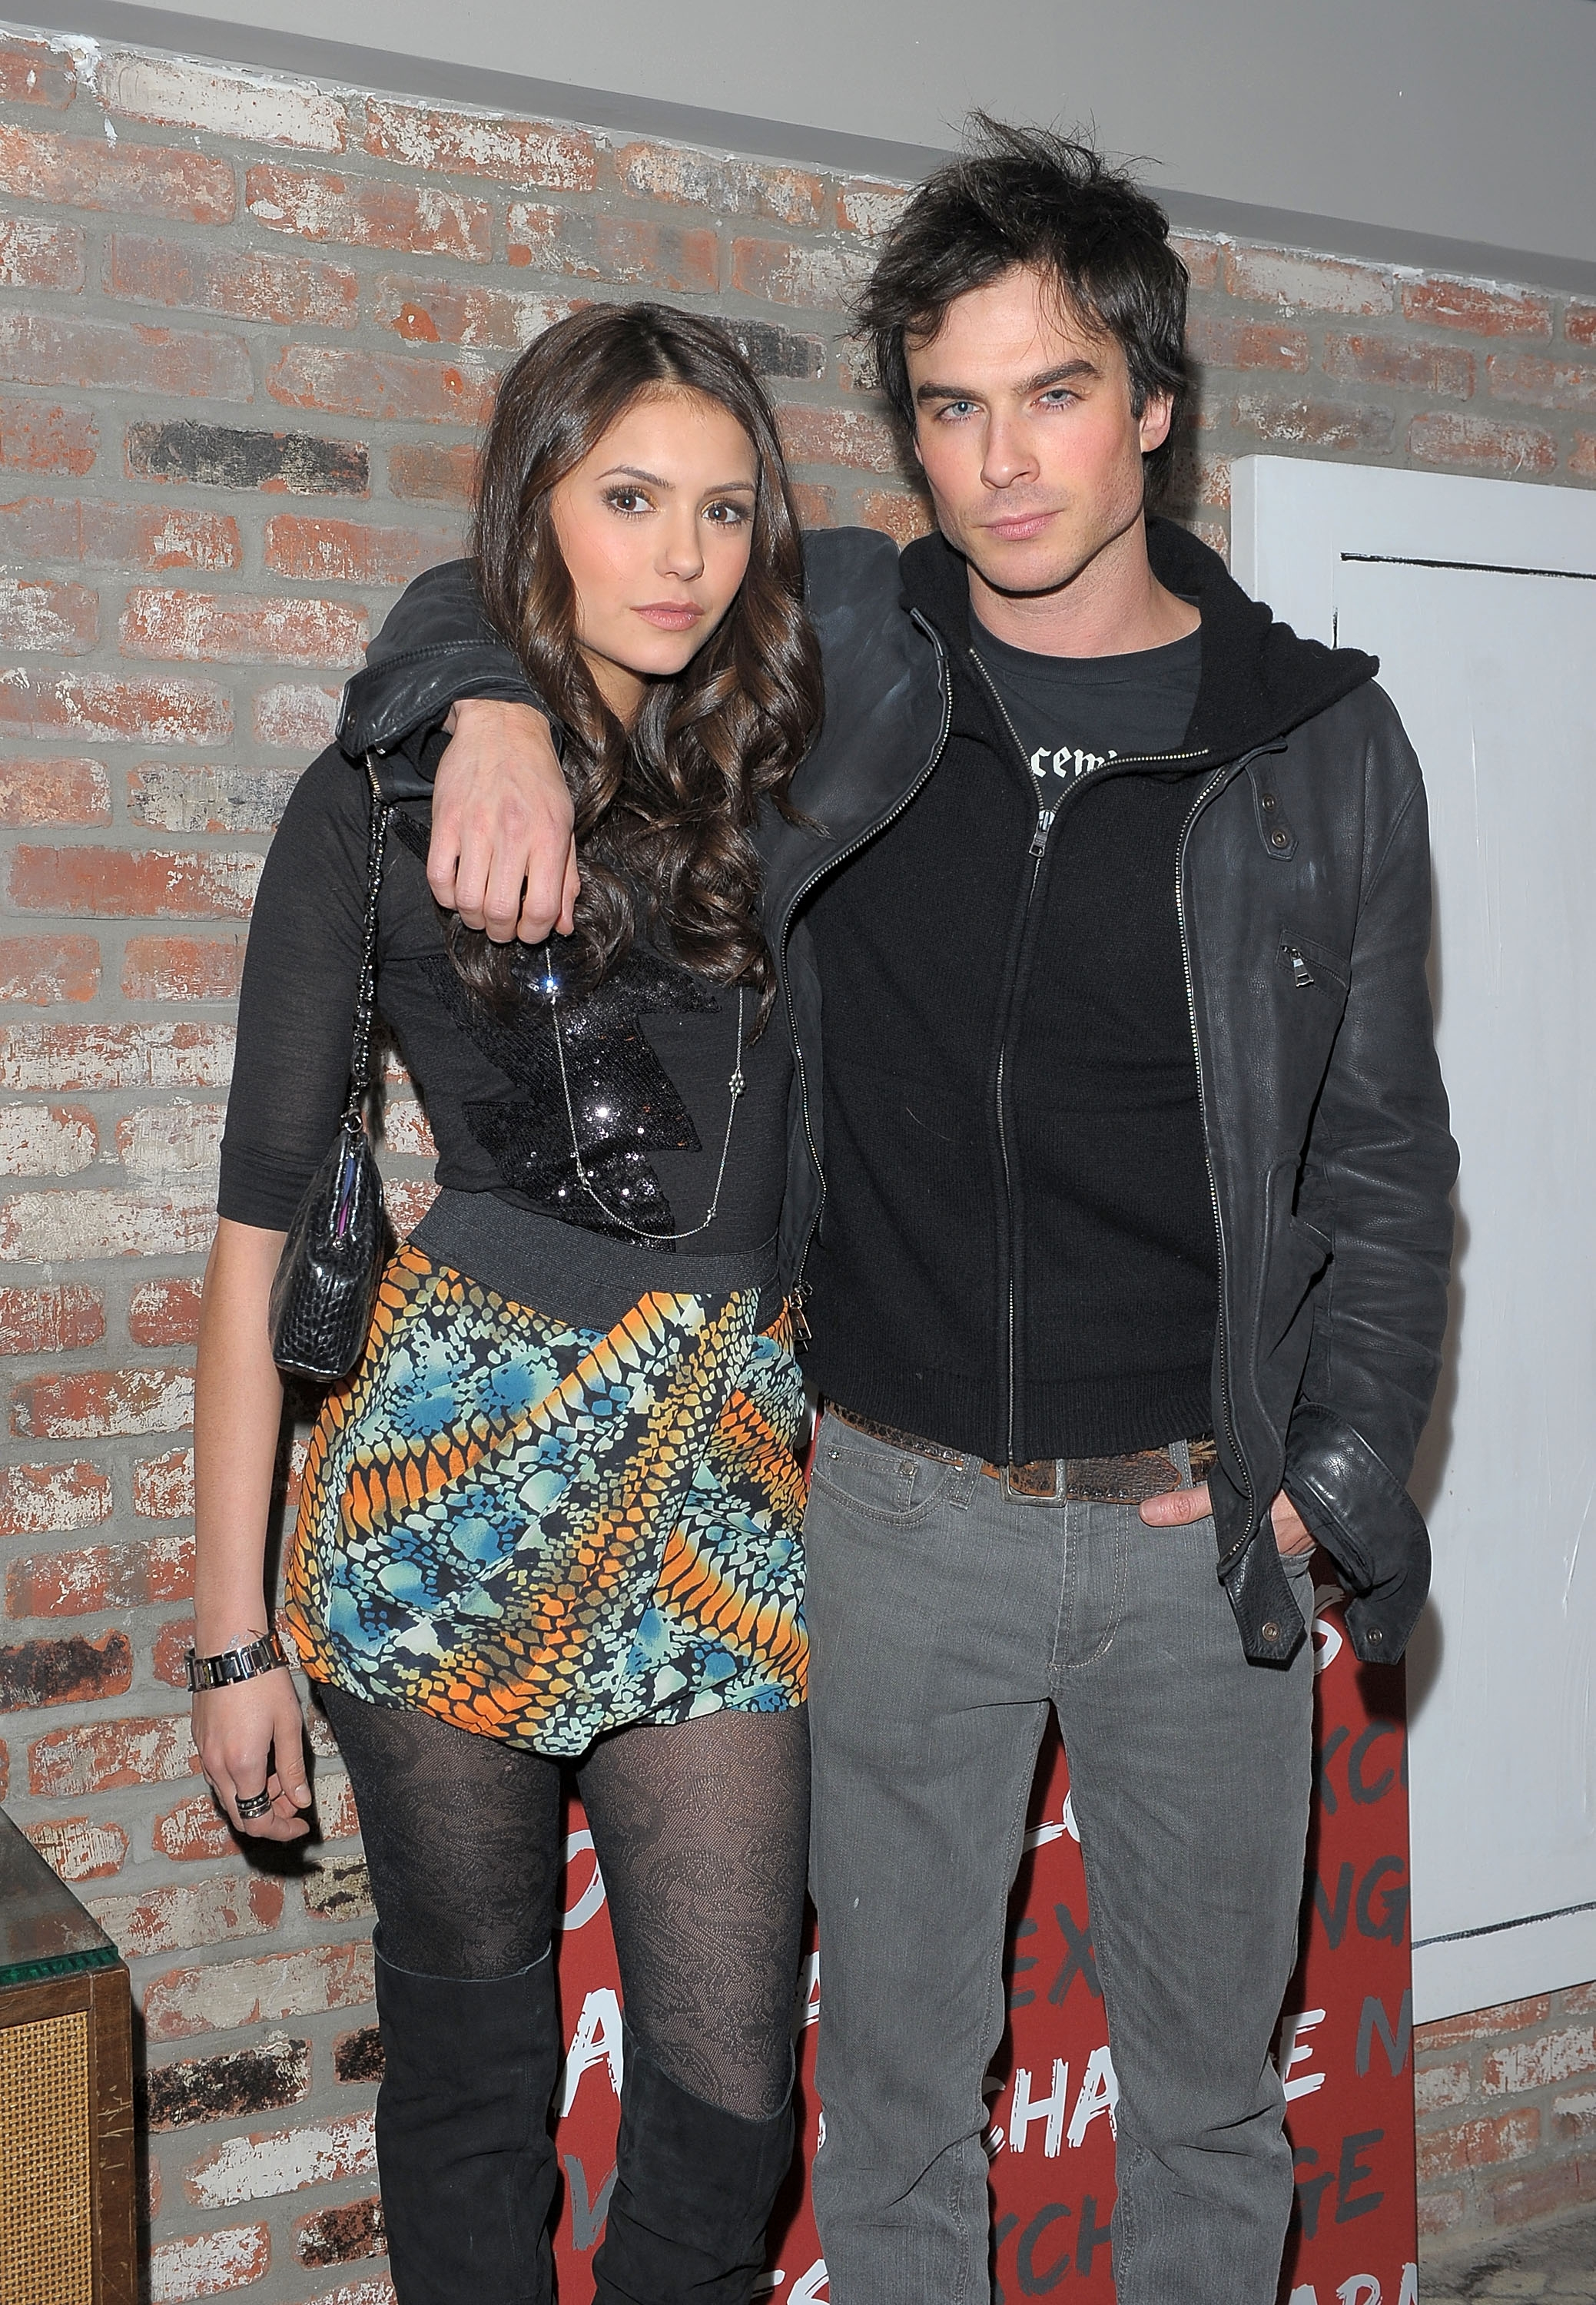 Are Ian Somerhalder and Nina Dobrev Still Dating in 2013?